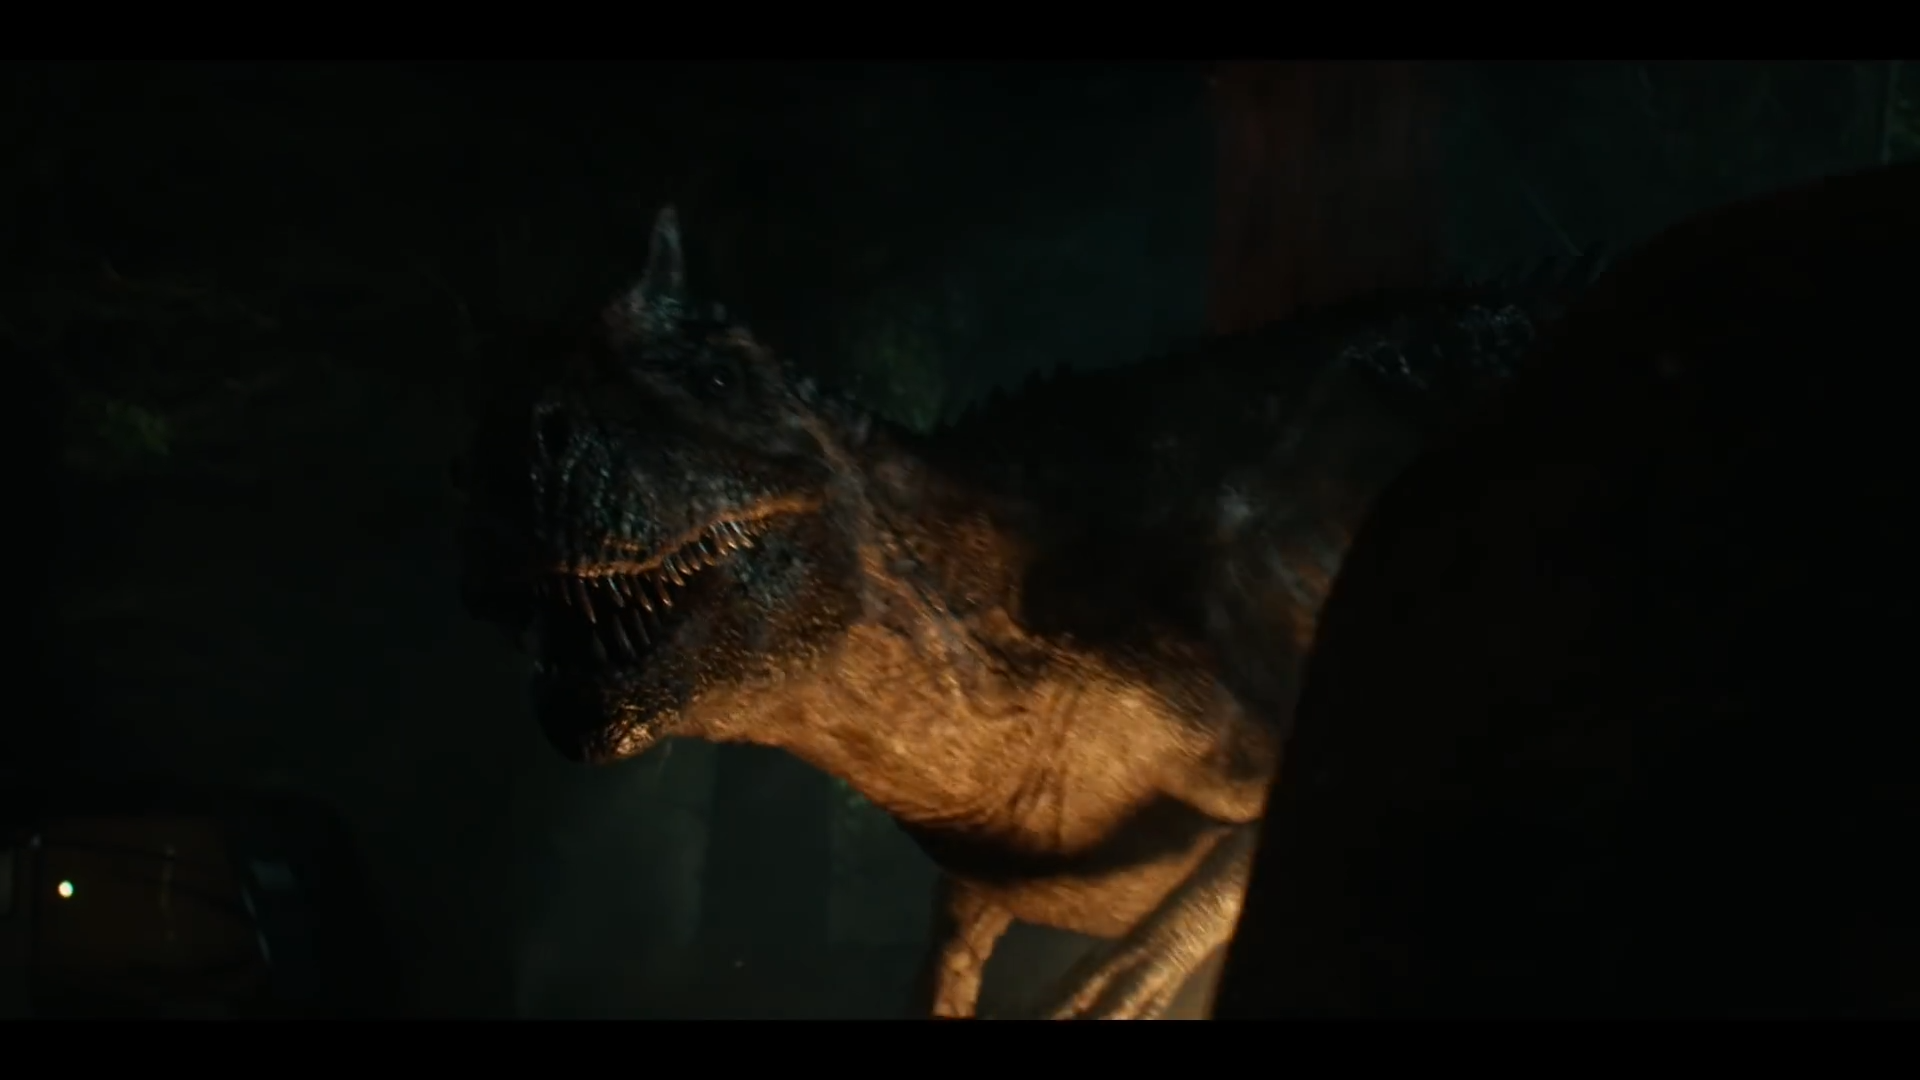 Jurassic World Short Film: Battle at Big Rock